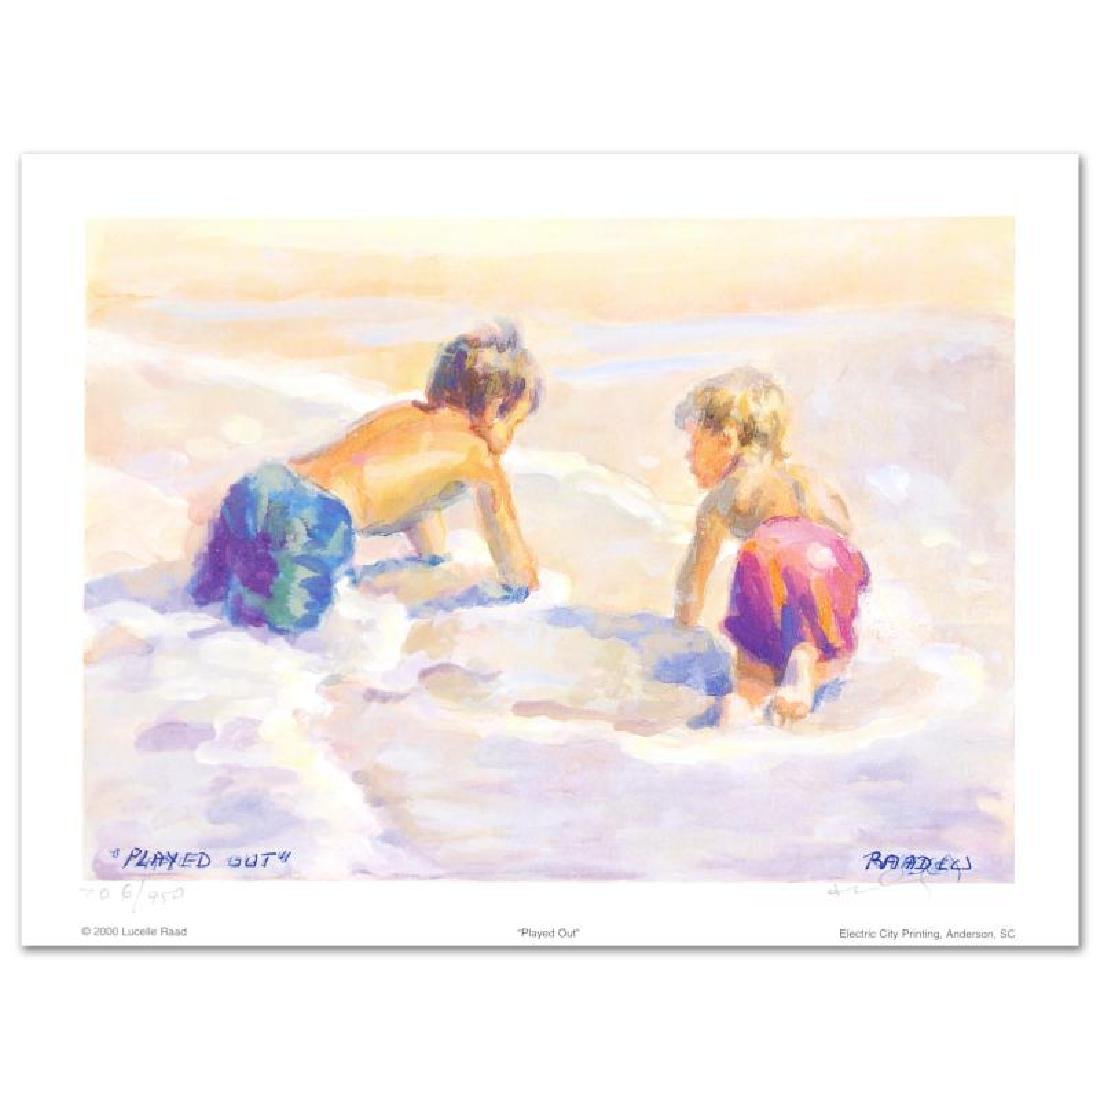 """""""Played Out"""" Limited Edition Lithograph by Lucelle Raad"""